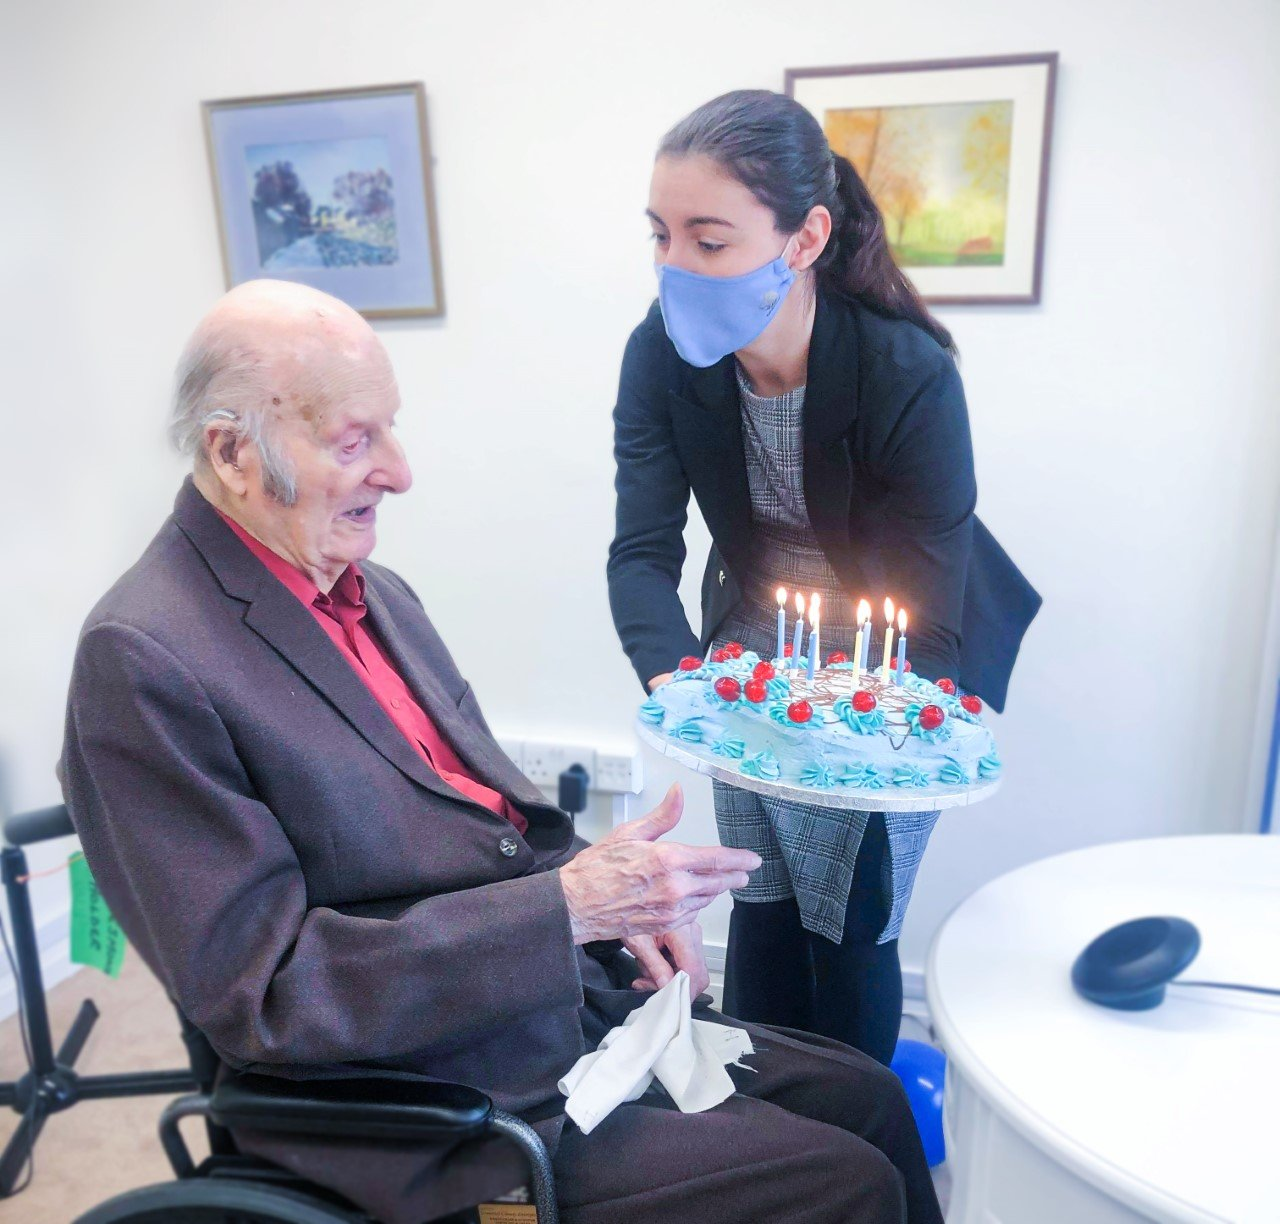 Care home celebrates residents 101st birthday with surprise family visit